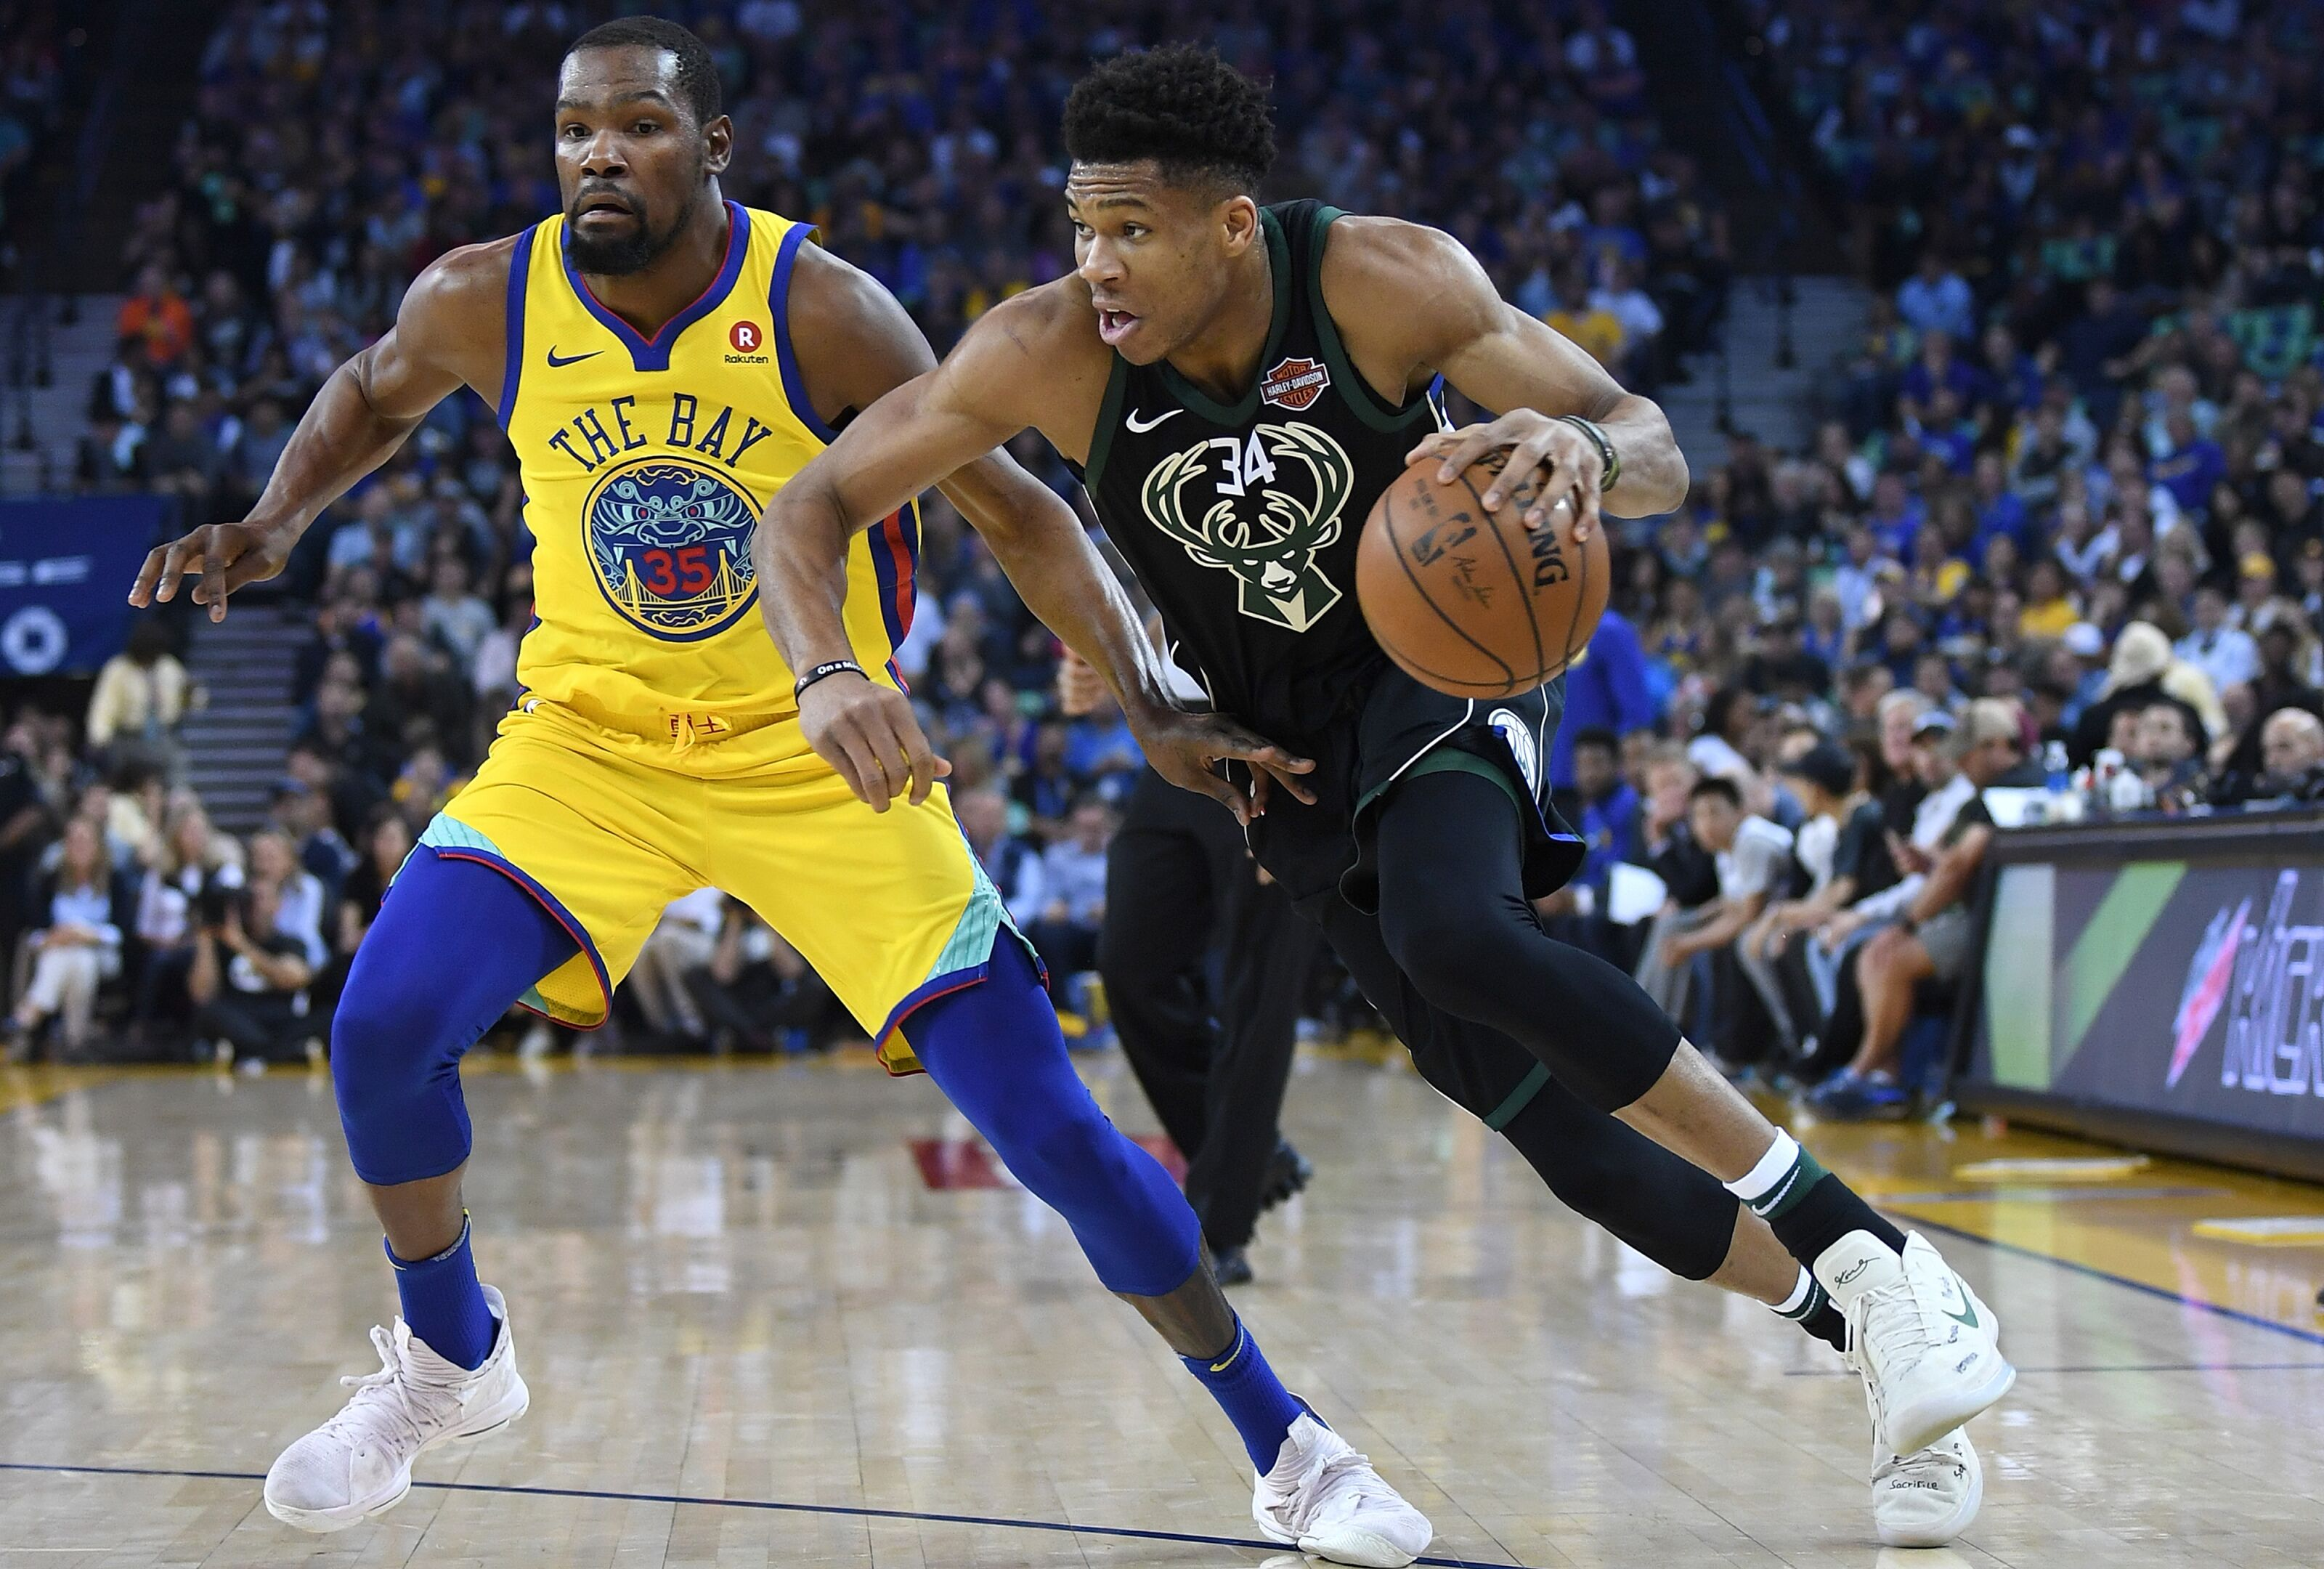 Max Kellerman believes Bucks have greatest chance to dethrone Warriors